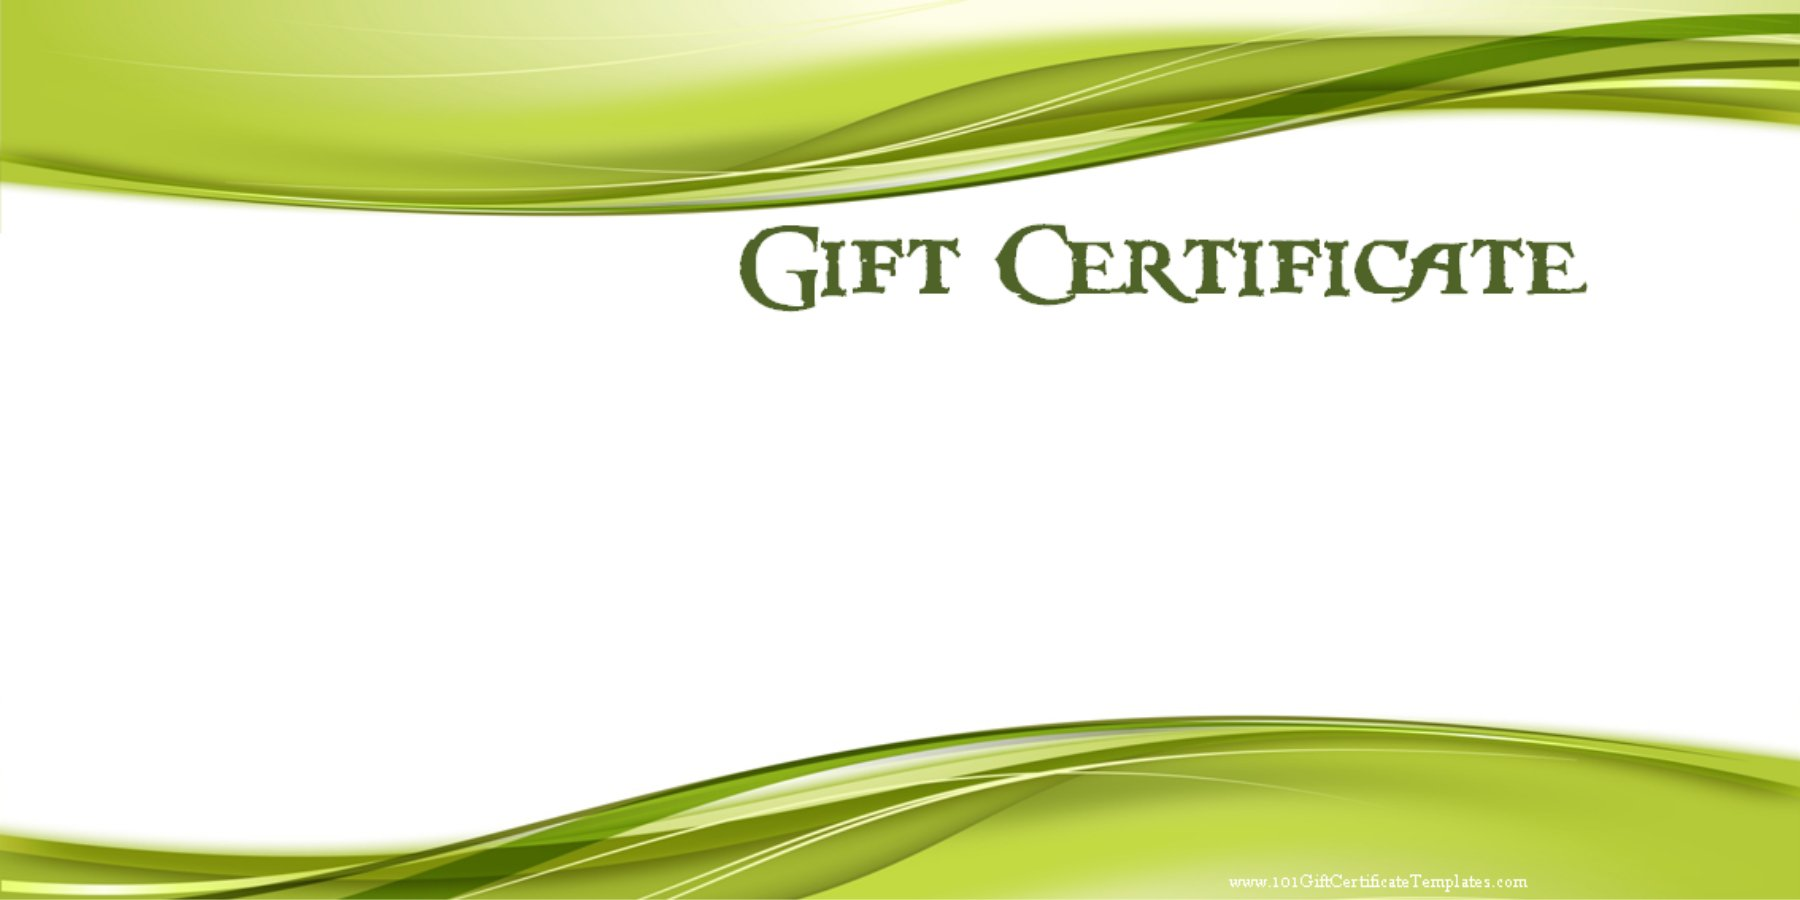 Best Free Mage Therapy Gift Certificate Template Images Gallery